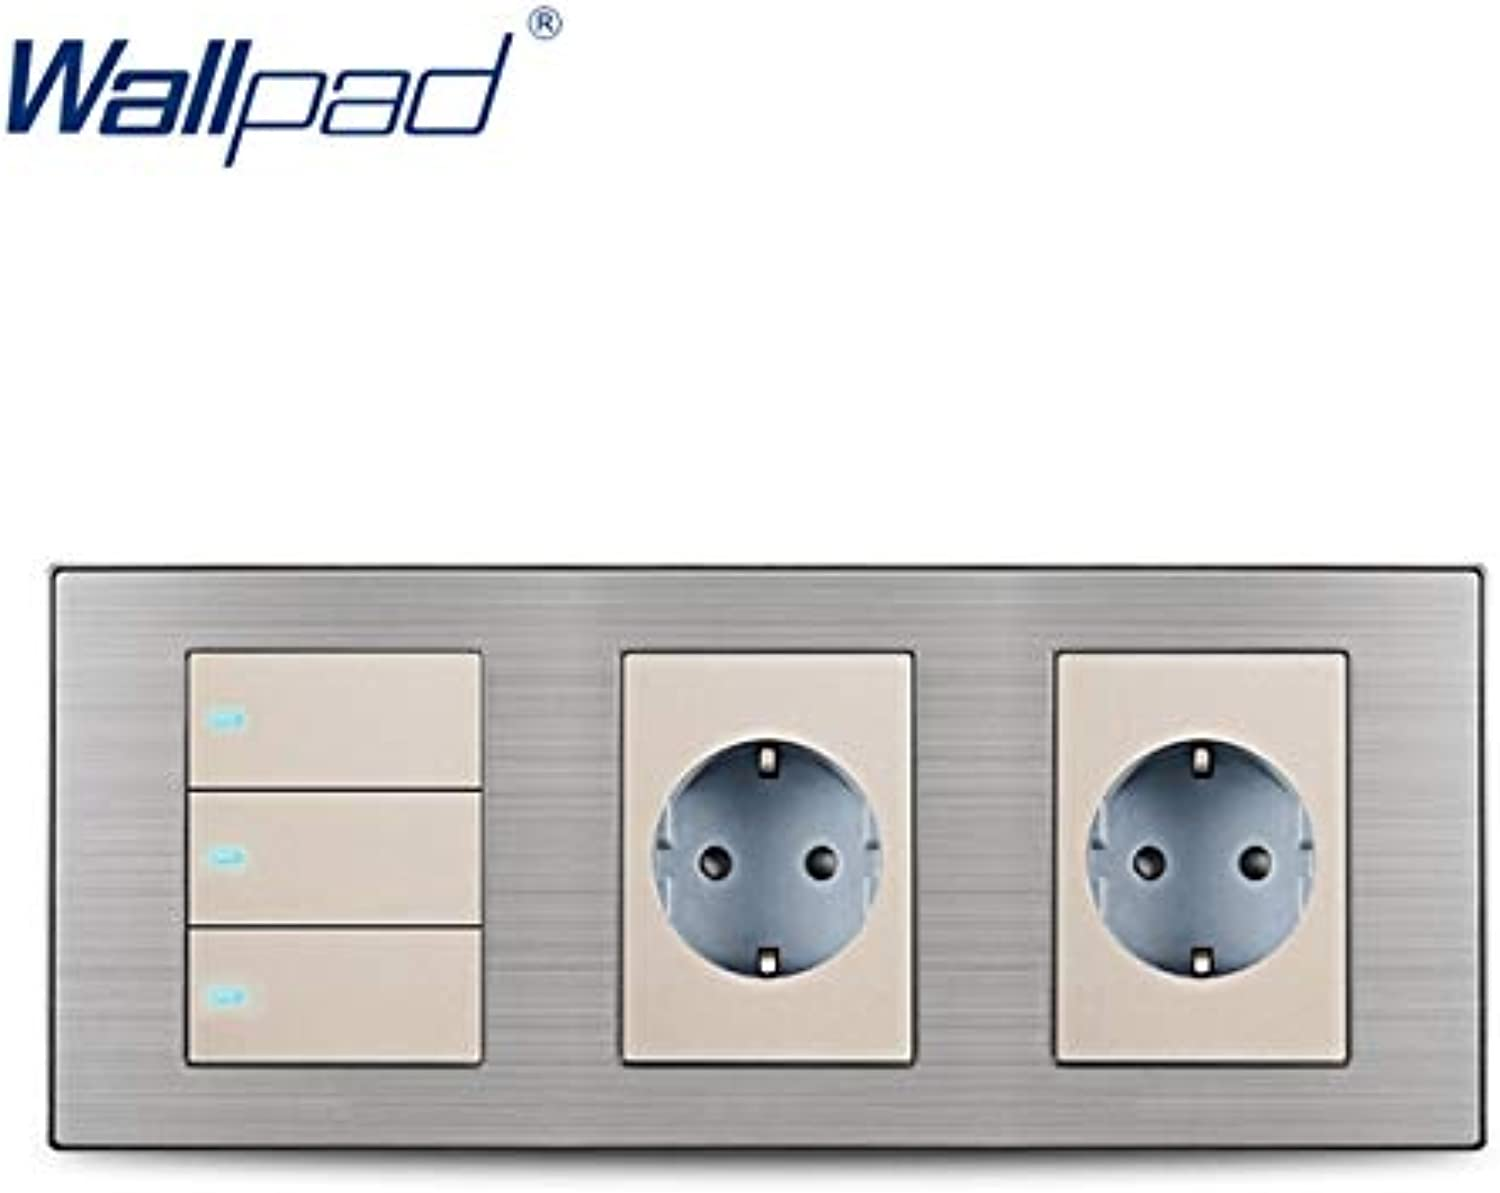 Wallpad Hot Sale 3 Button 2 Way Switch with 2 EU Socket Schuko Luxury Wall Electric Power Outlet German Standard 234  86mm  (color  Champagne)